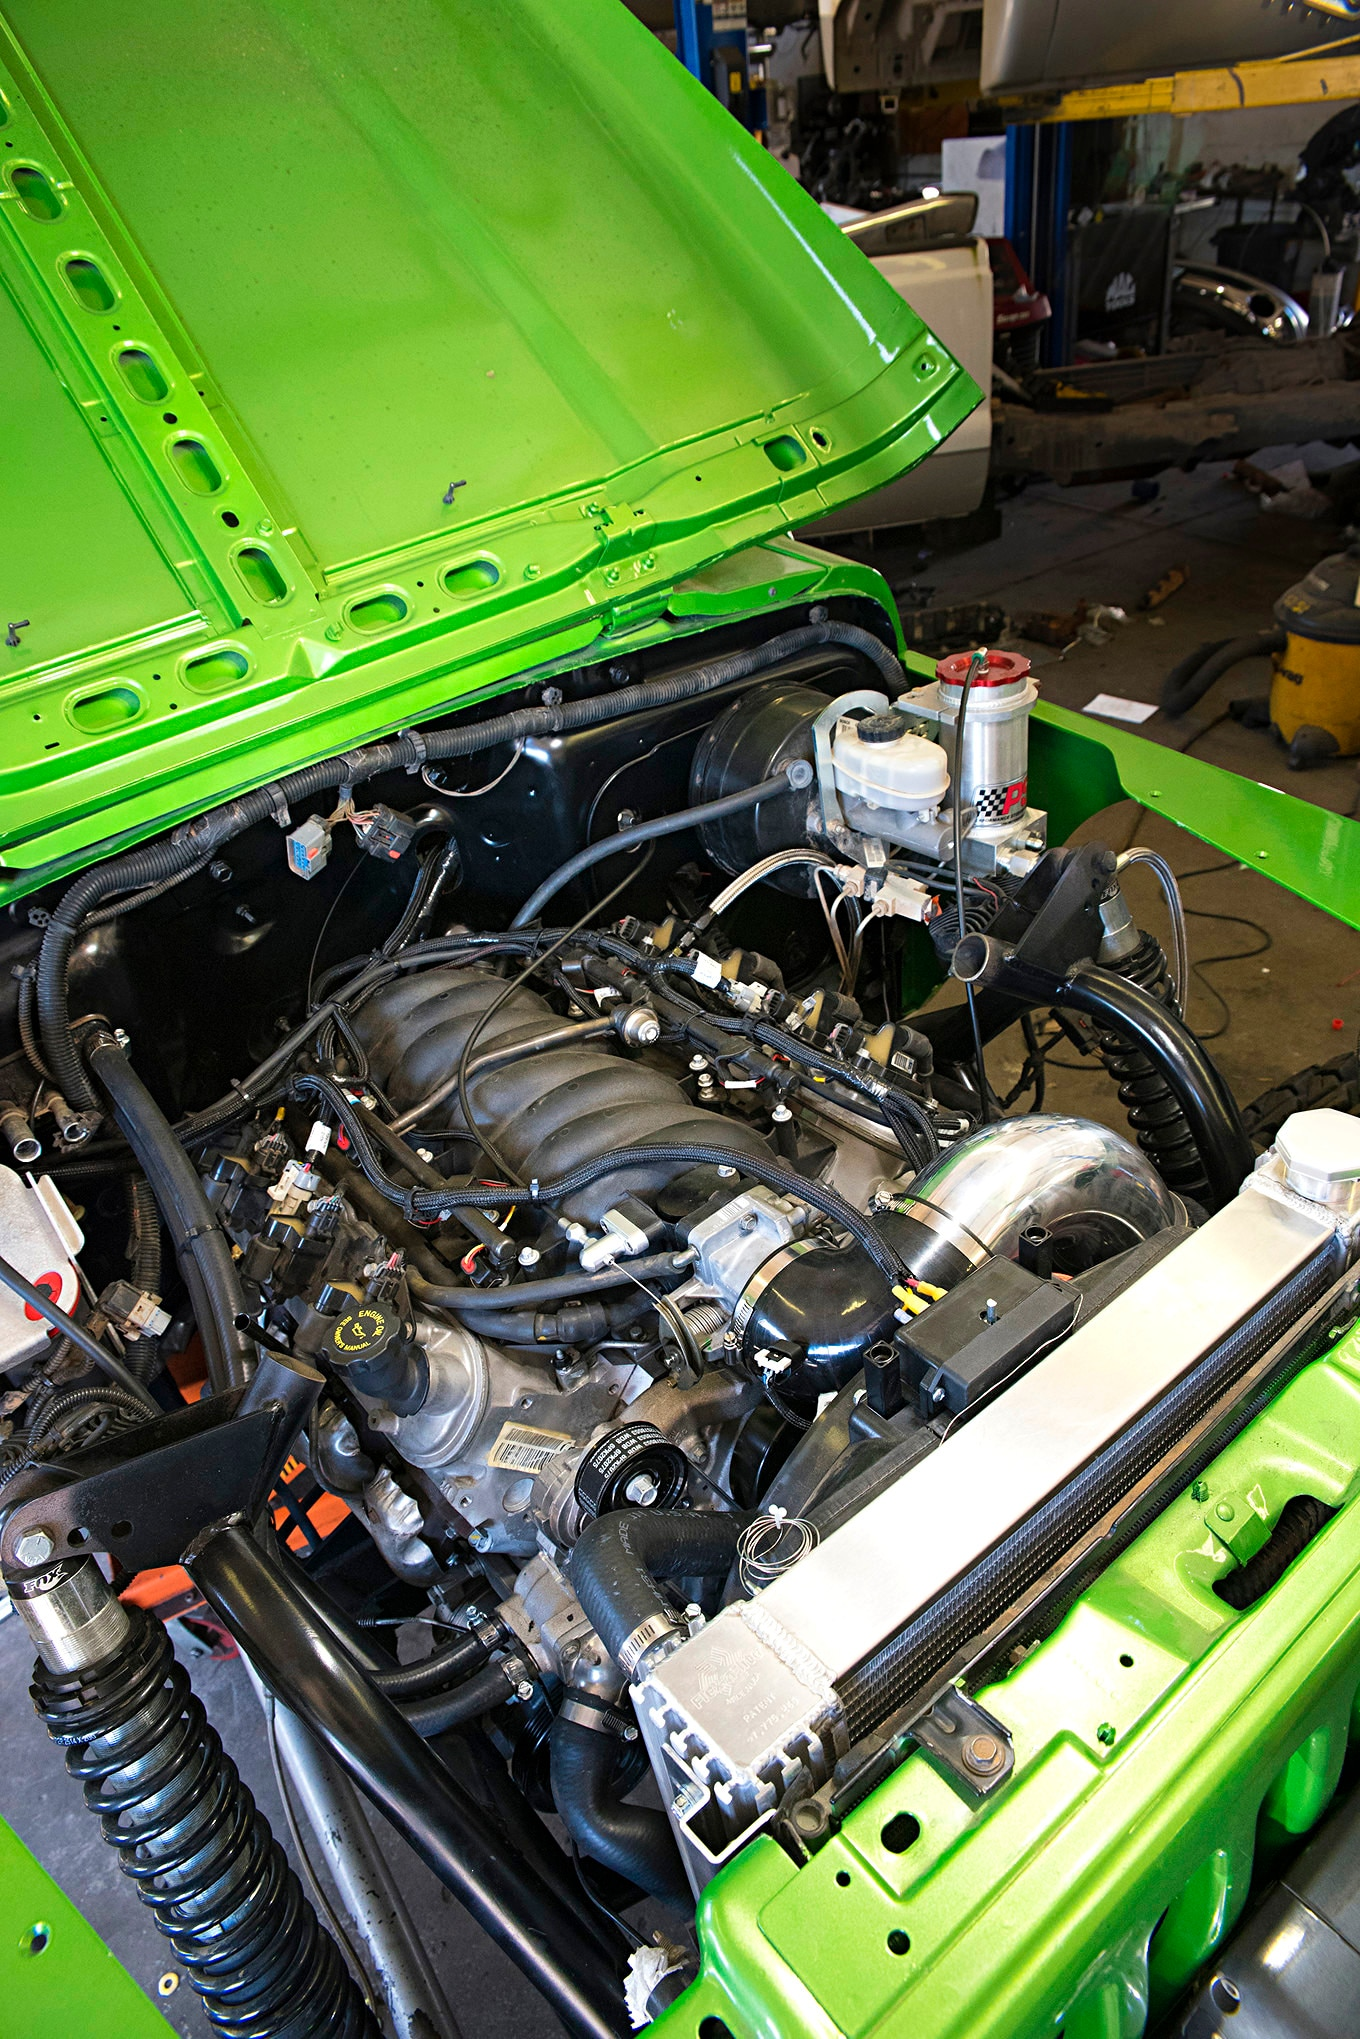 This LS1 looks a lot better sitting in our TJ than in the Camaro it was pulled out of a few months ago.